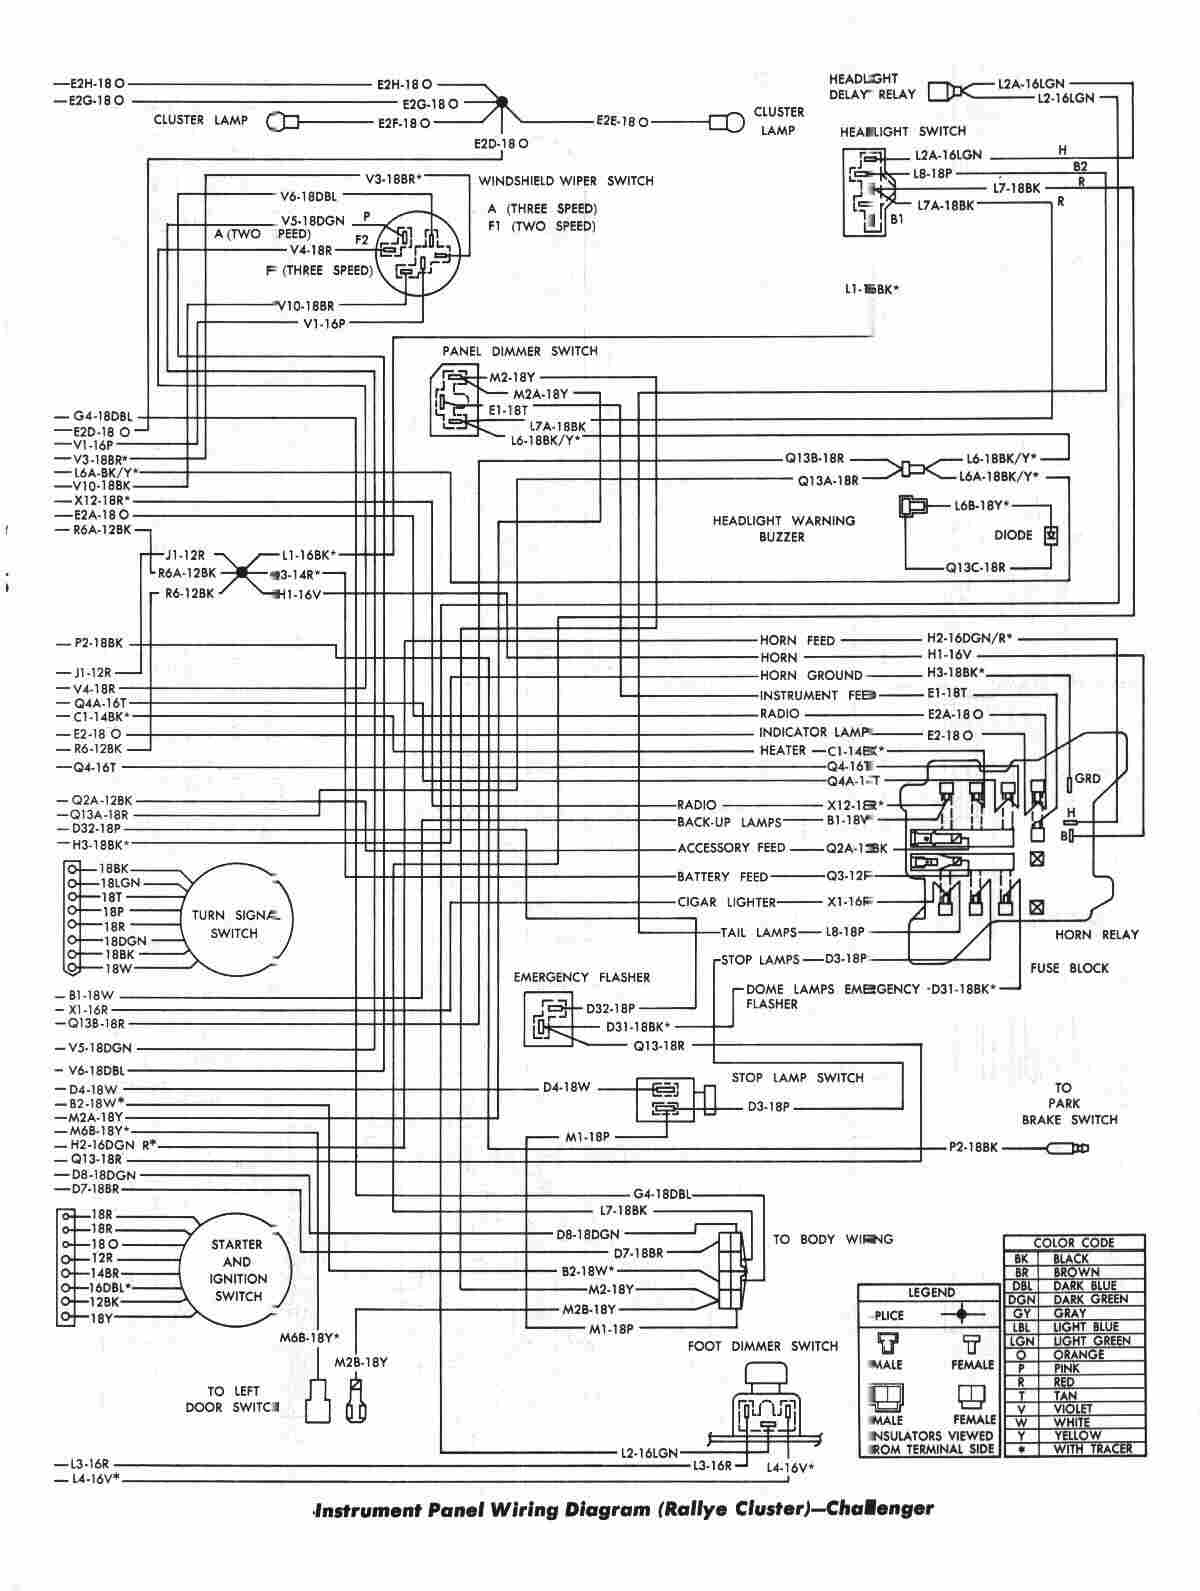 2011 Dodge Truck Wiring Diagram : Dodge challenger instrument panel wiring diagram